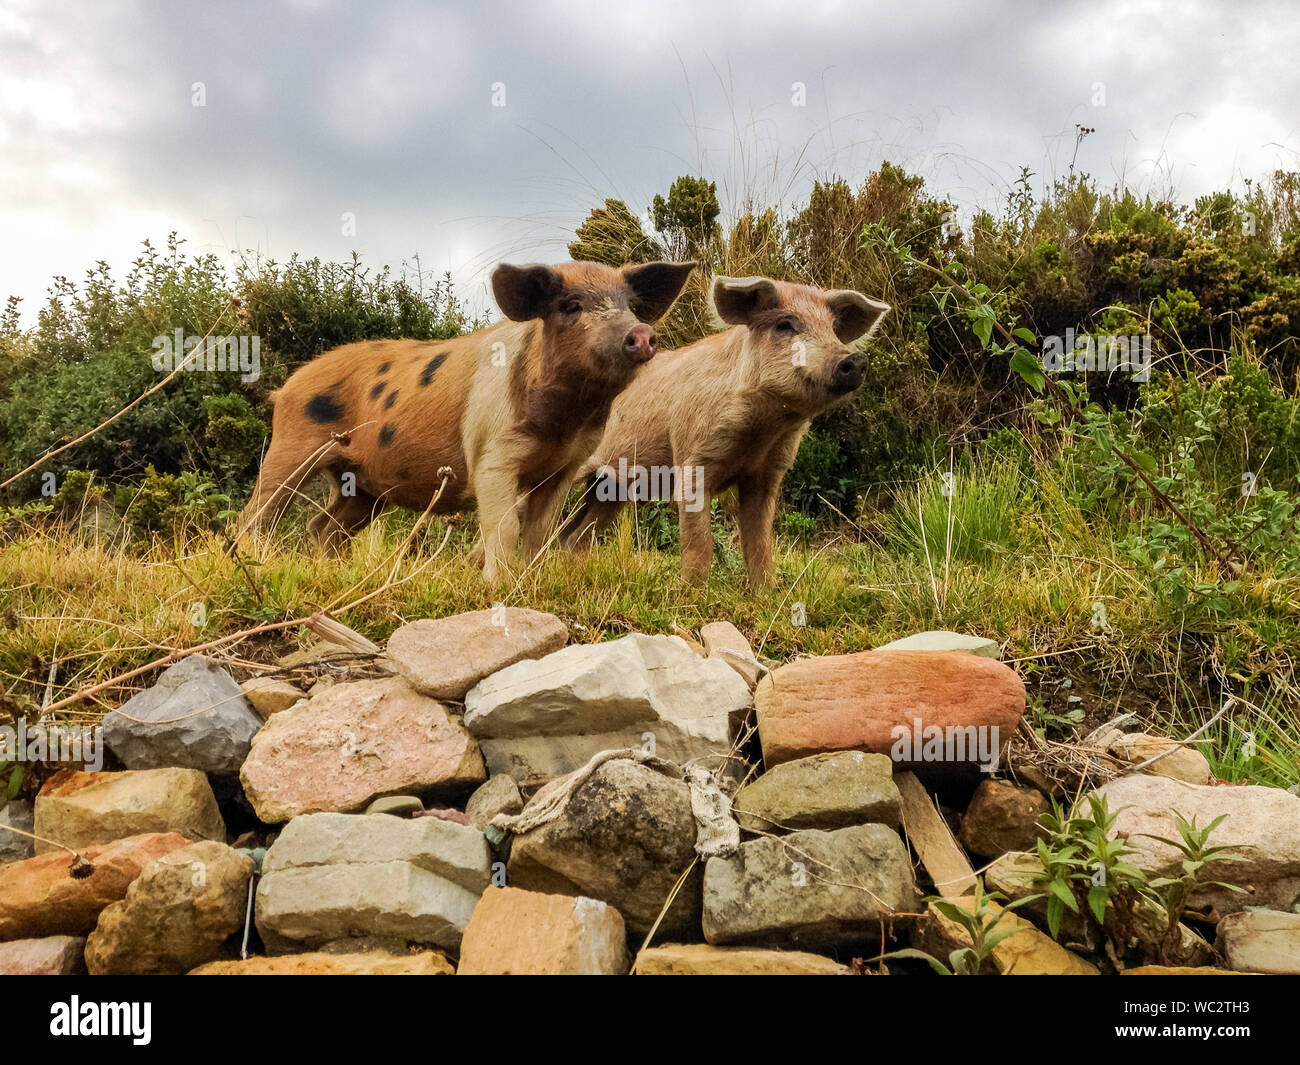 Riberalta Bolivia Two Small Pigs Looking At The Other Animals On The Farm Stock Photo Alamy